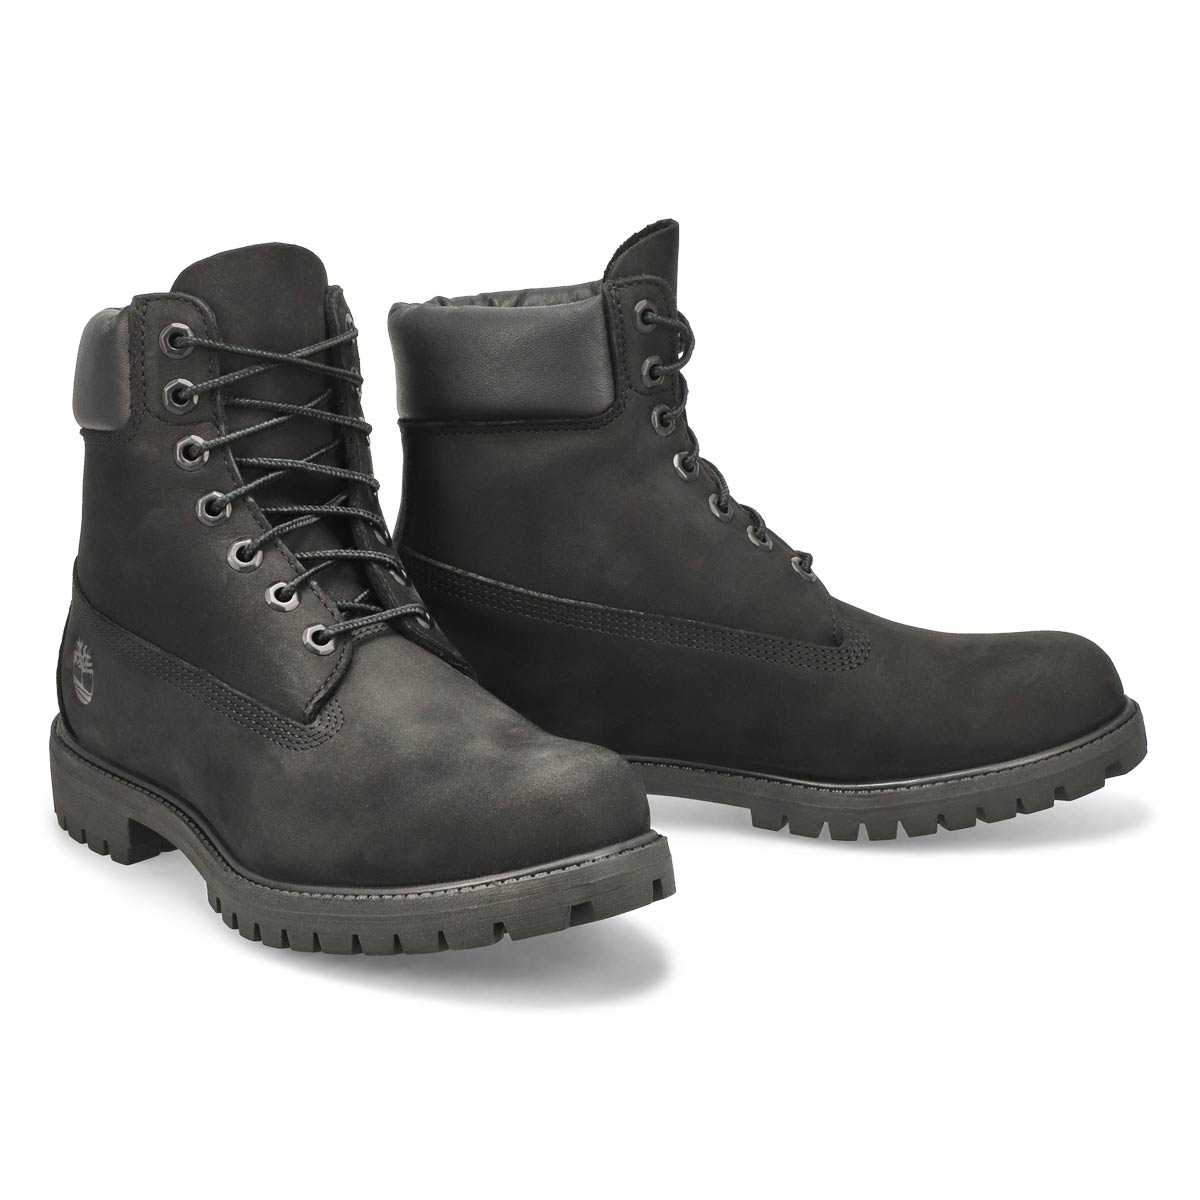 Mns Icon black waterproof ankle boot